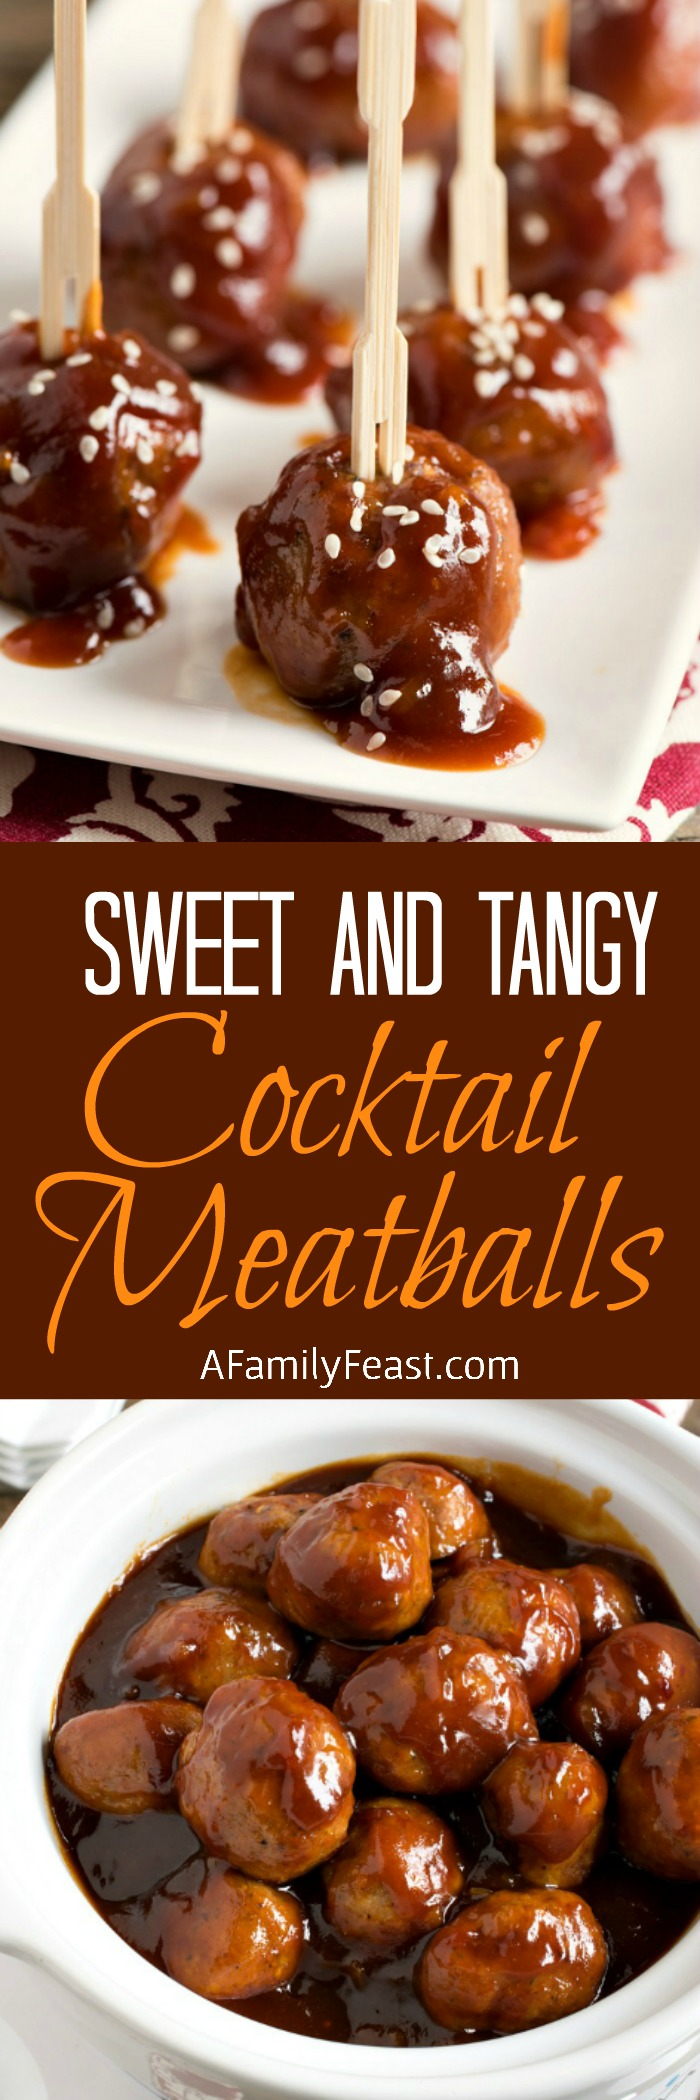 Sweet and Tangy Cocktail Meatballs - Tender turkey meatballs in a fantastic sweet and tangy sauce! Perfect for game day parties!